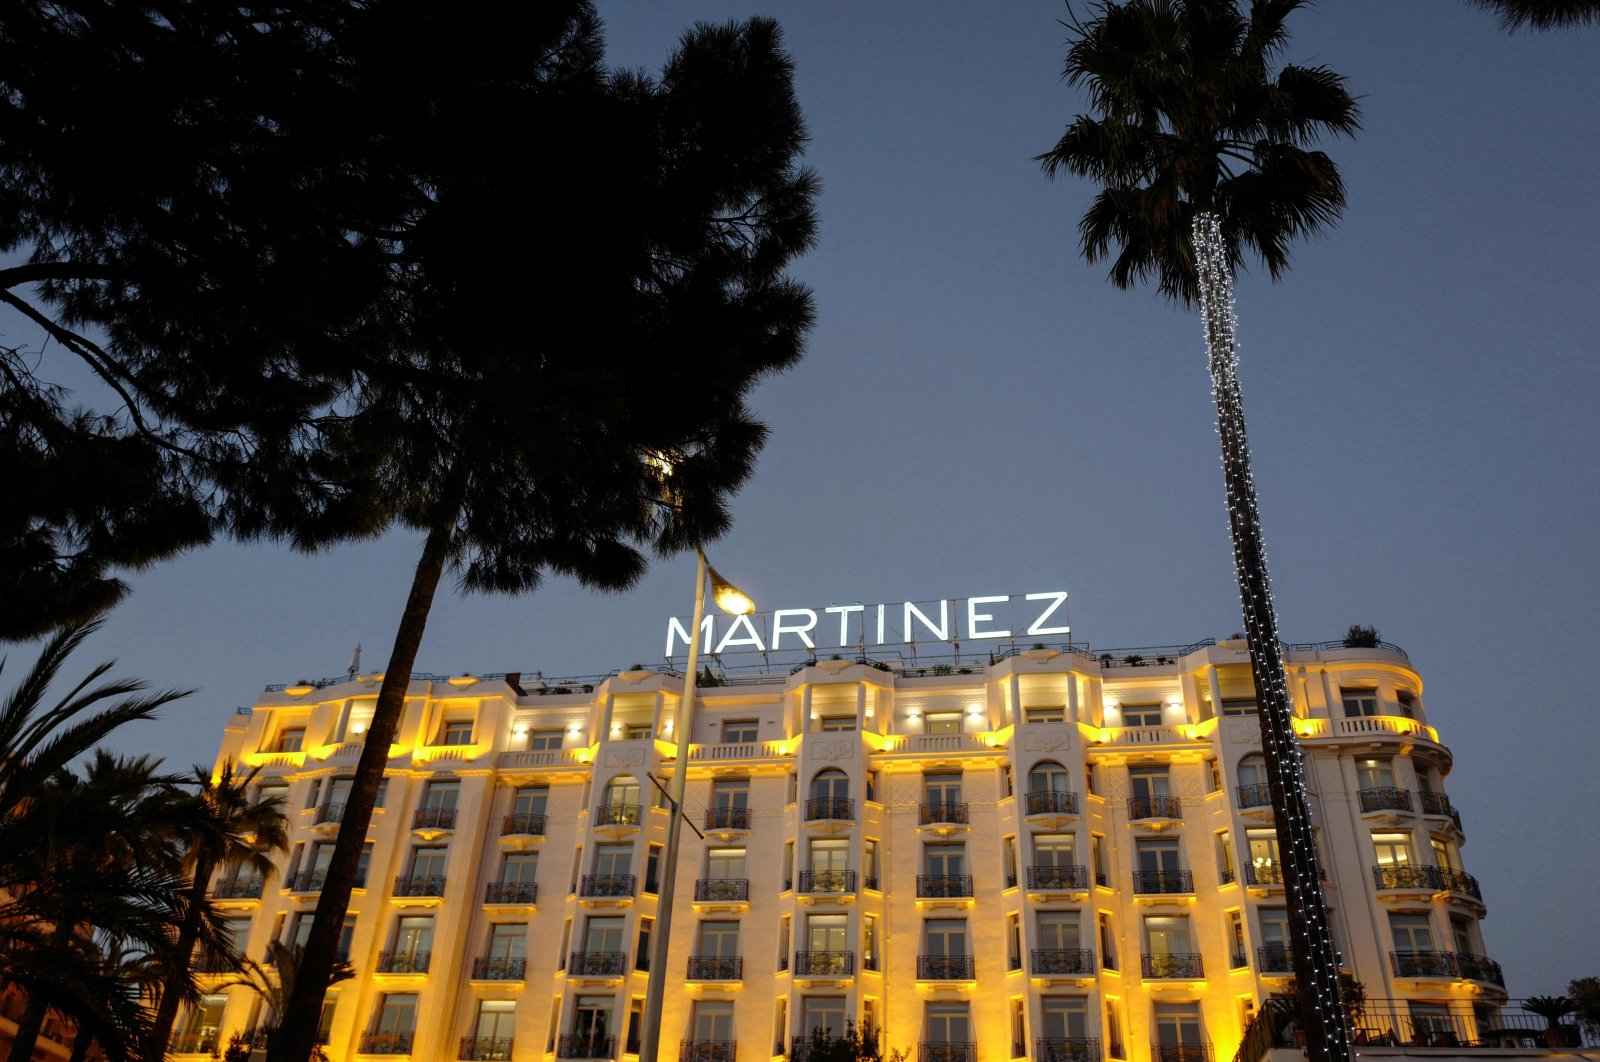 Lights shine upon the Hotel Martinez palace in the evening, on the French riviera city of Cannes, southern France, March 20, 2019. (AFP Photo)